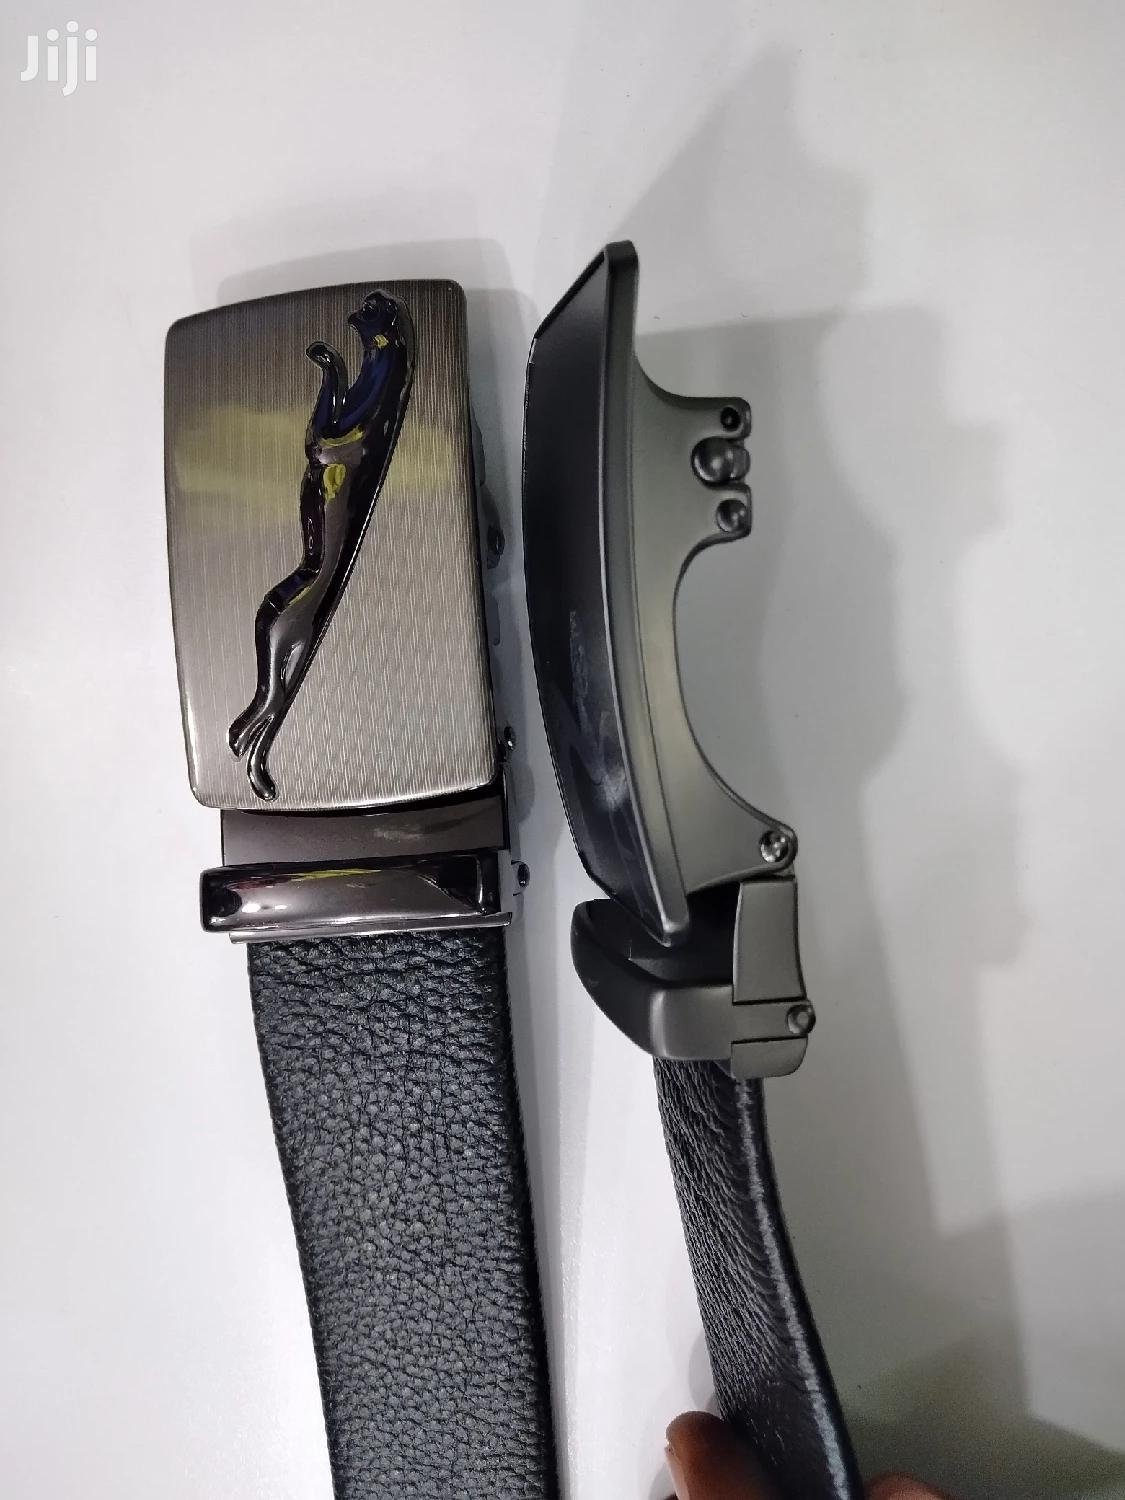 Original Leather Belts | Clothing Accessories for sale in Kampala, Central Region, Uganda